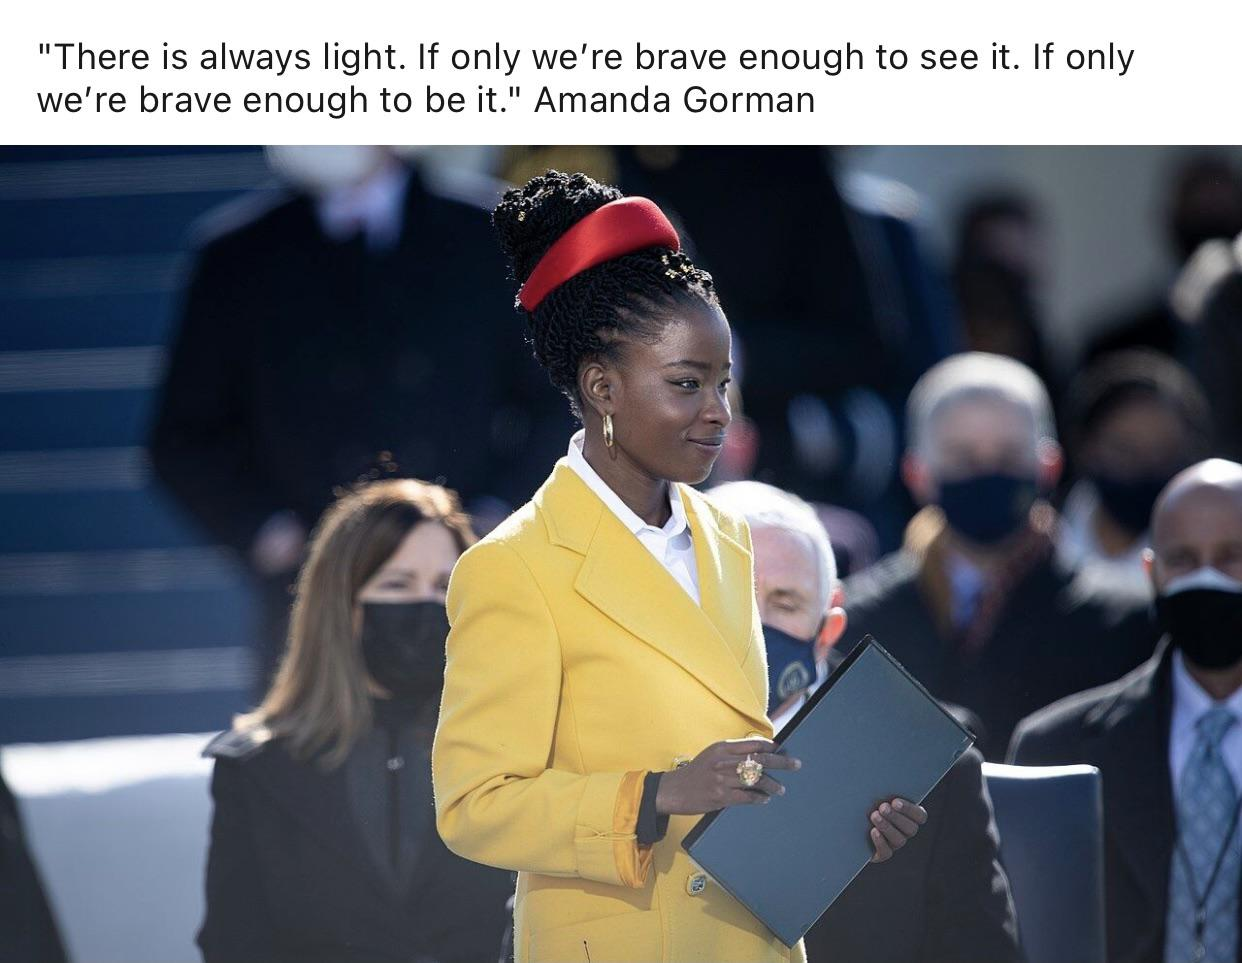 [Image] See the light, be the light and then become the light for others.